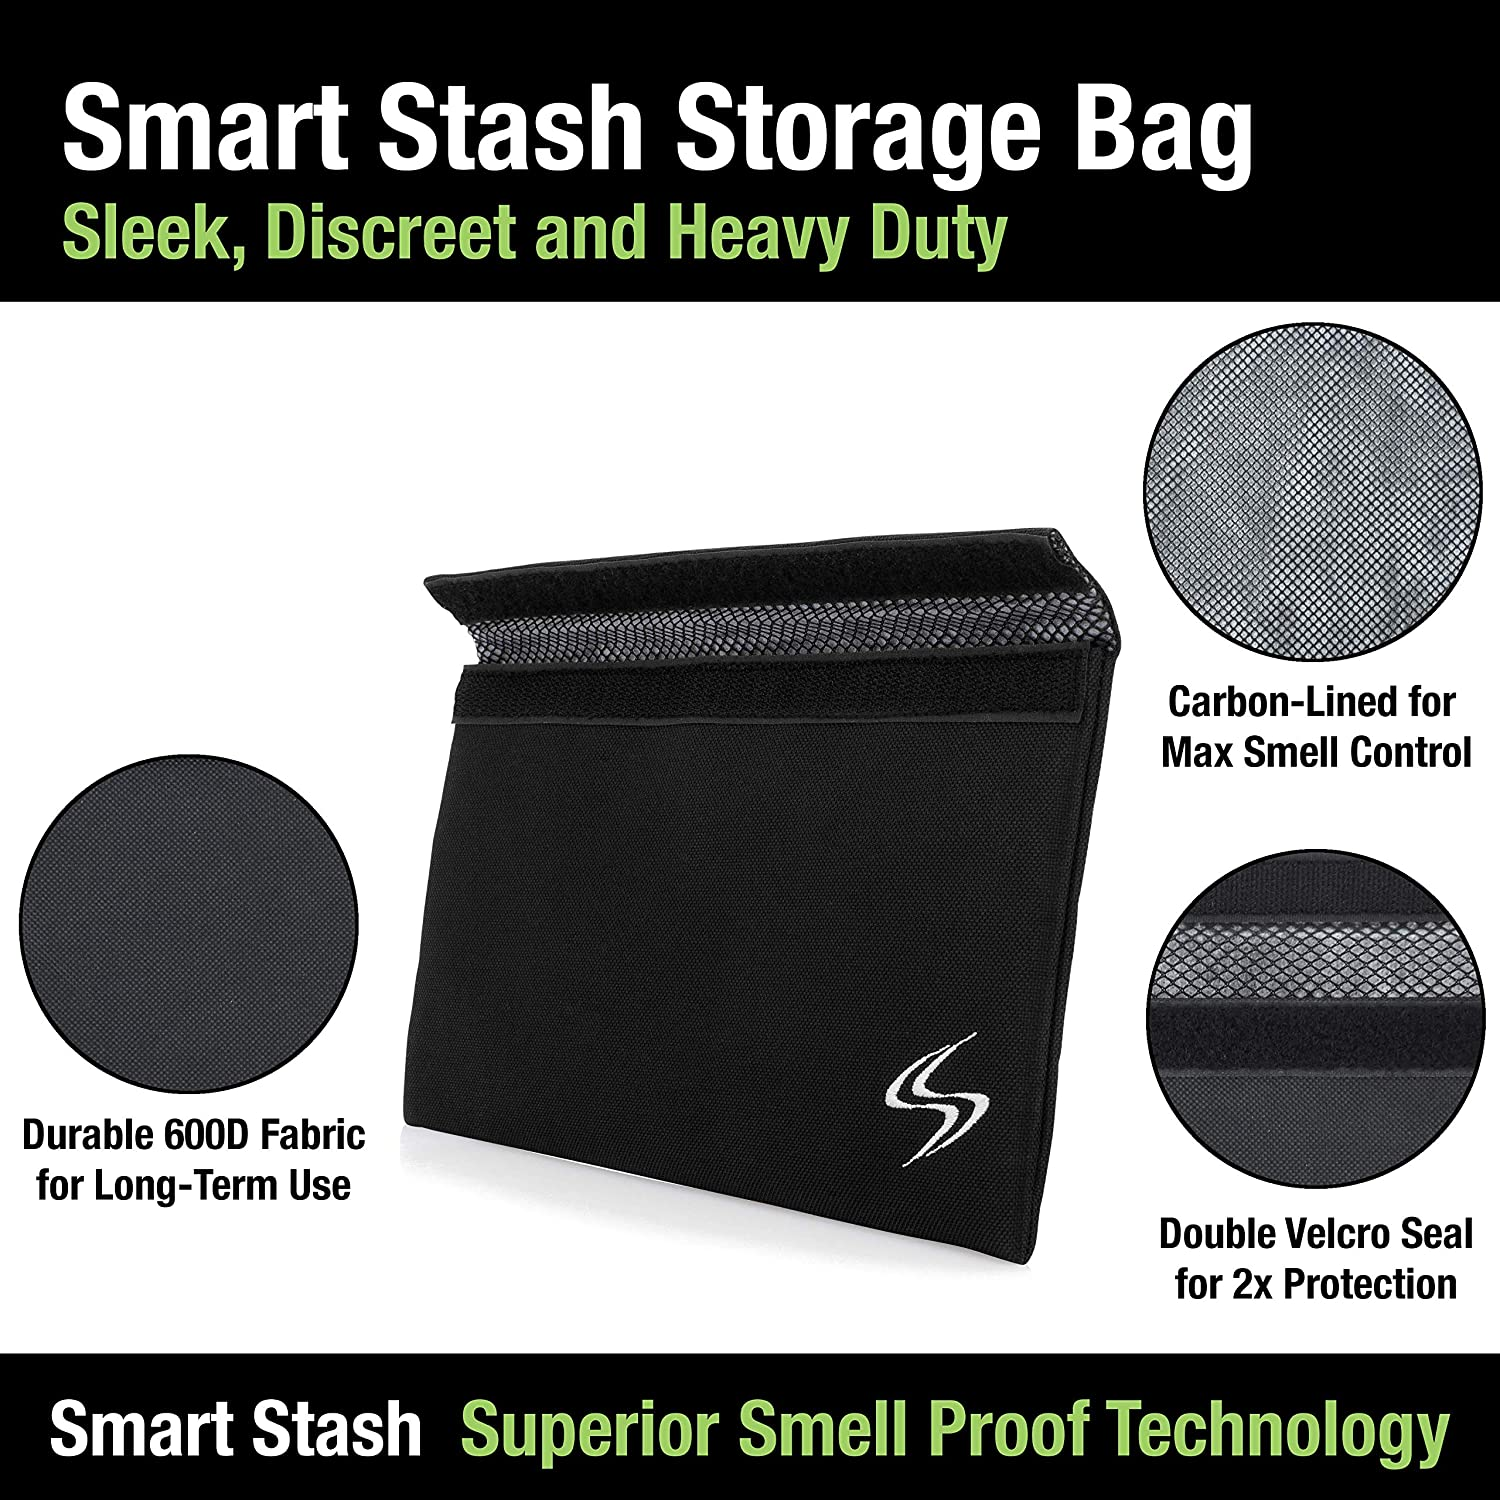 a25cf894d Amazon.com: Smell Proof Bag - Smart Stash Pouch 11x6 for Herbs, Weed  Grinder, Pipe | Large Odor Lock Container - Carbon Lined for Discreet  Odorless Travel ...